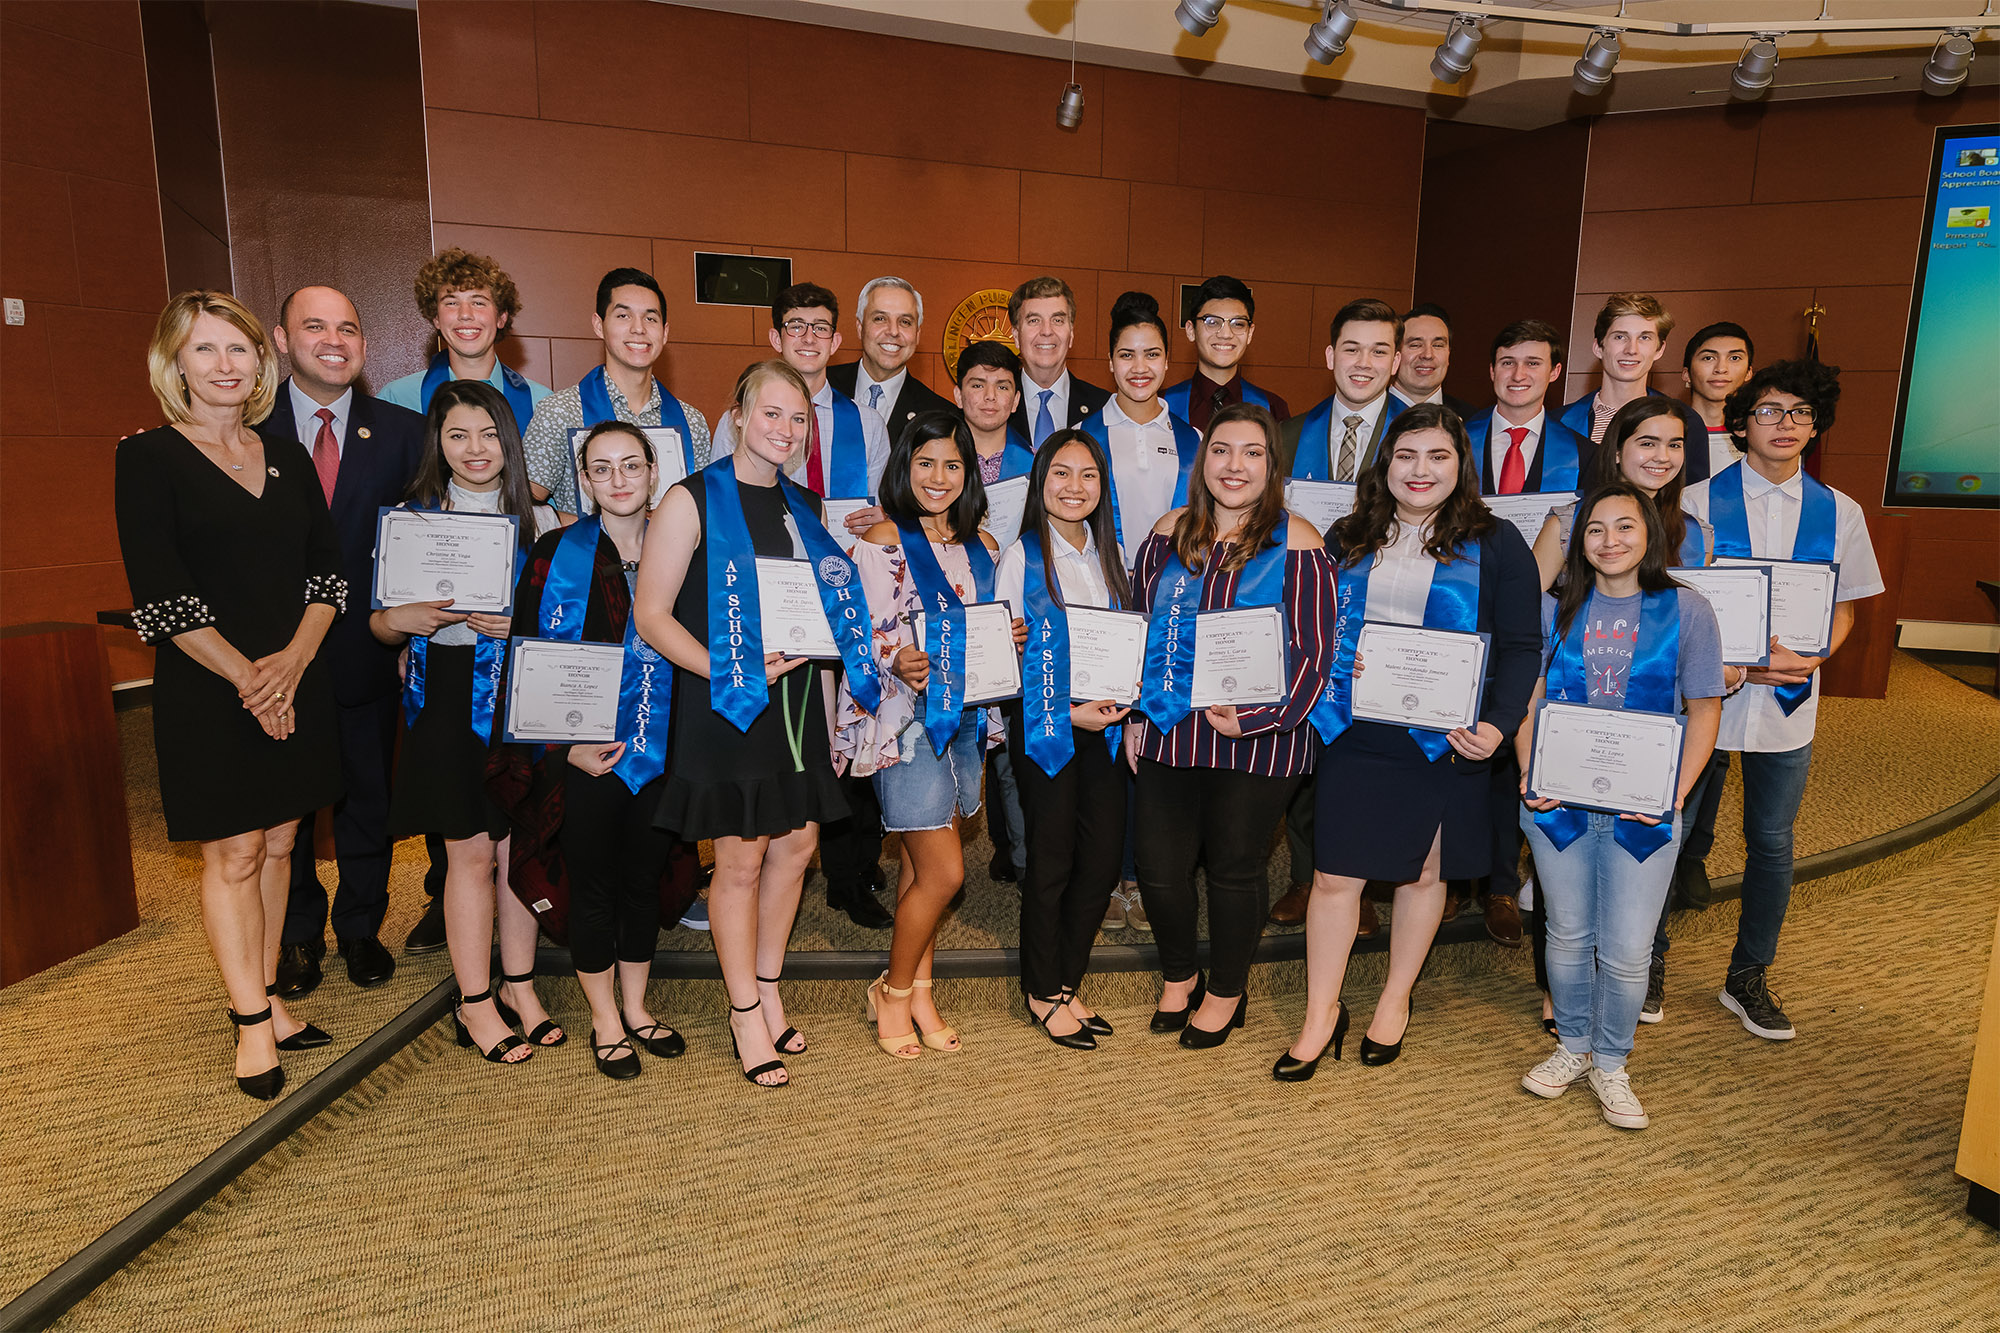 HCISD recognizes 2018 Scholars